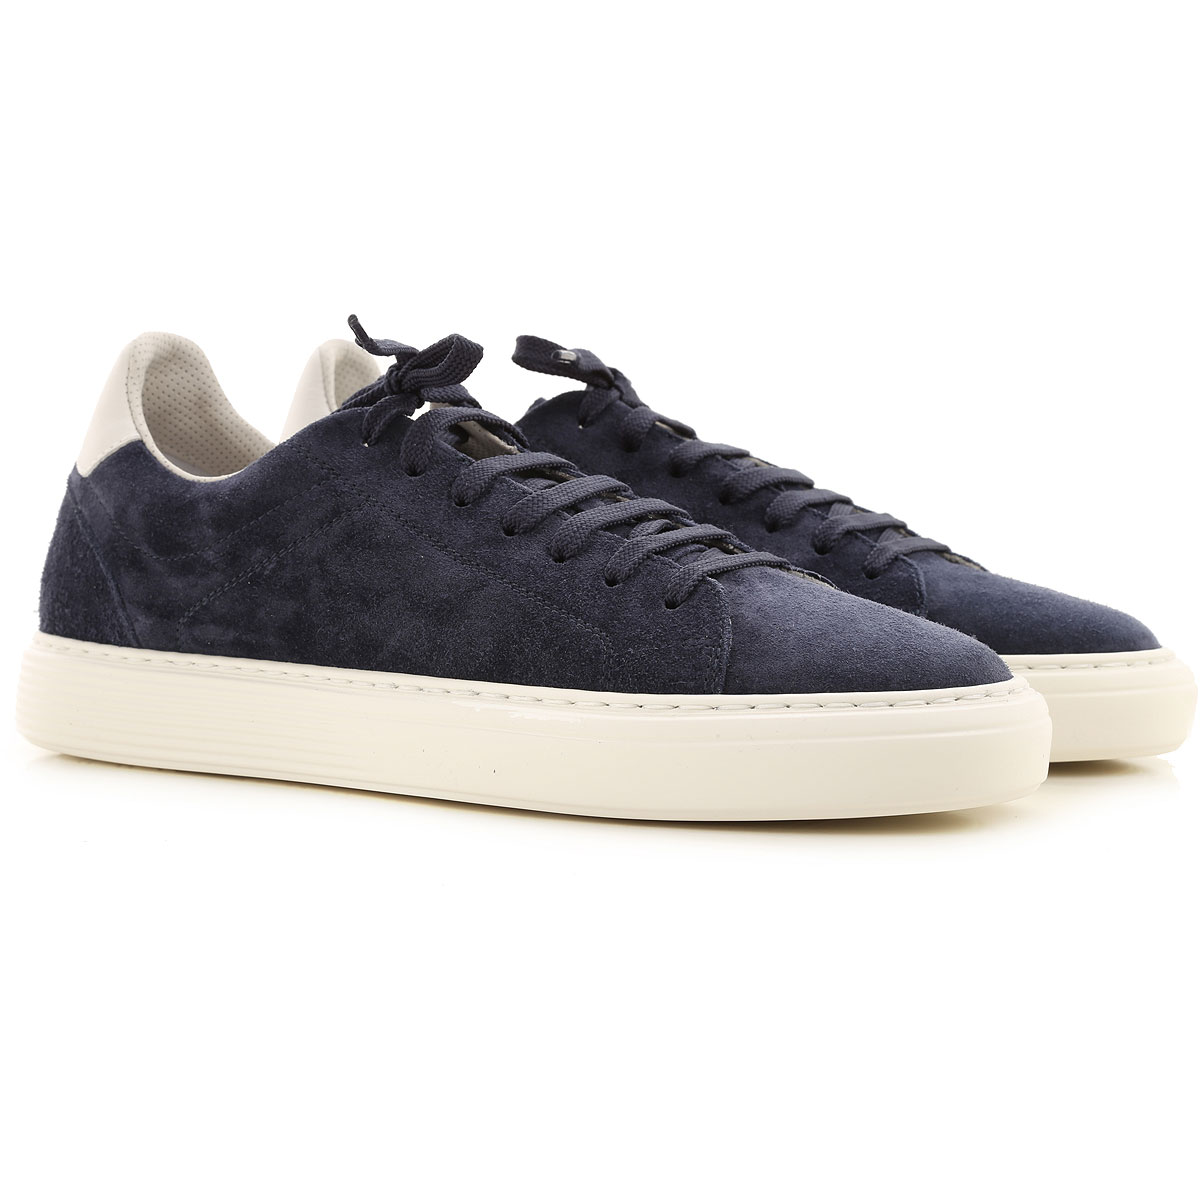 Brunello Cucinelli Sneakers for Men On Sale, navy, Suede leather, 2019, 10.5 11.5 7.5